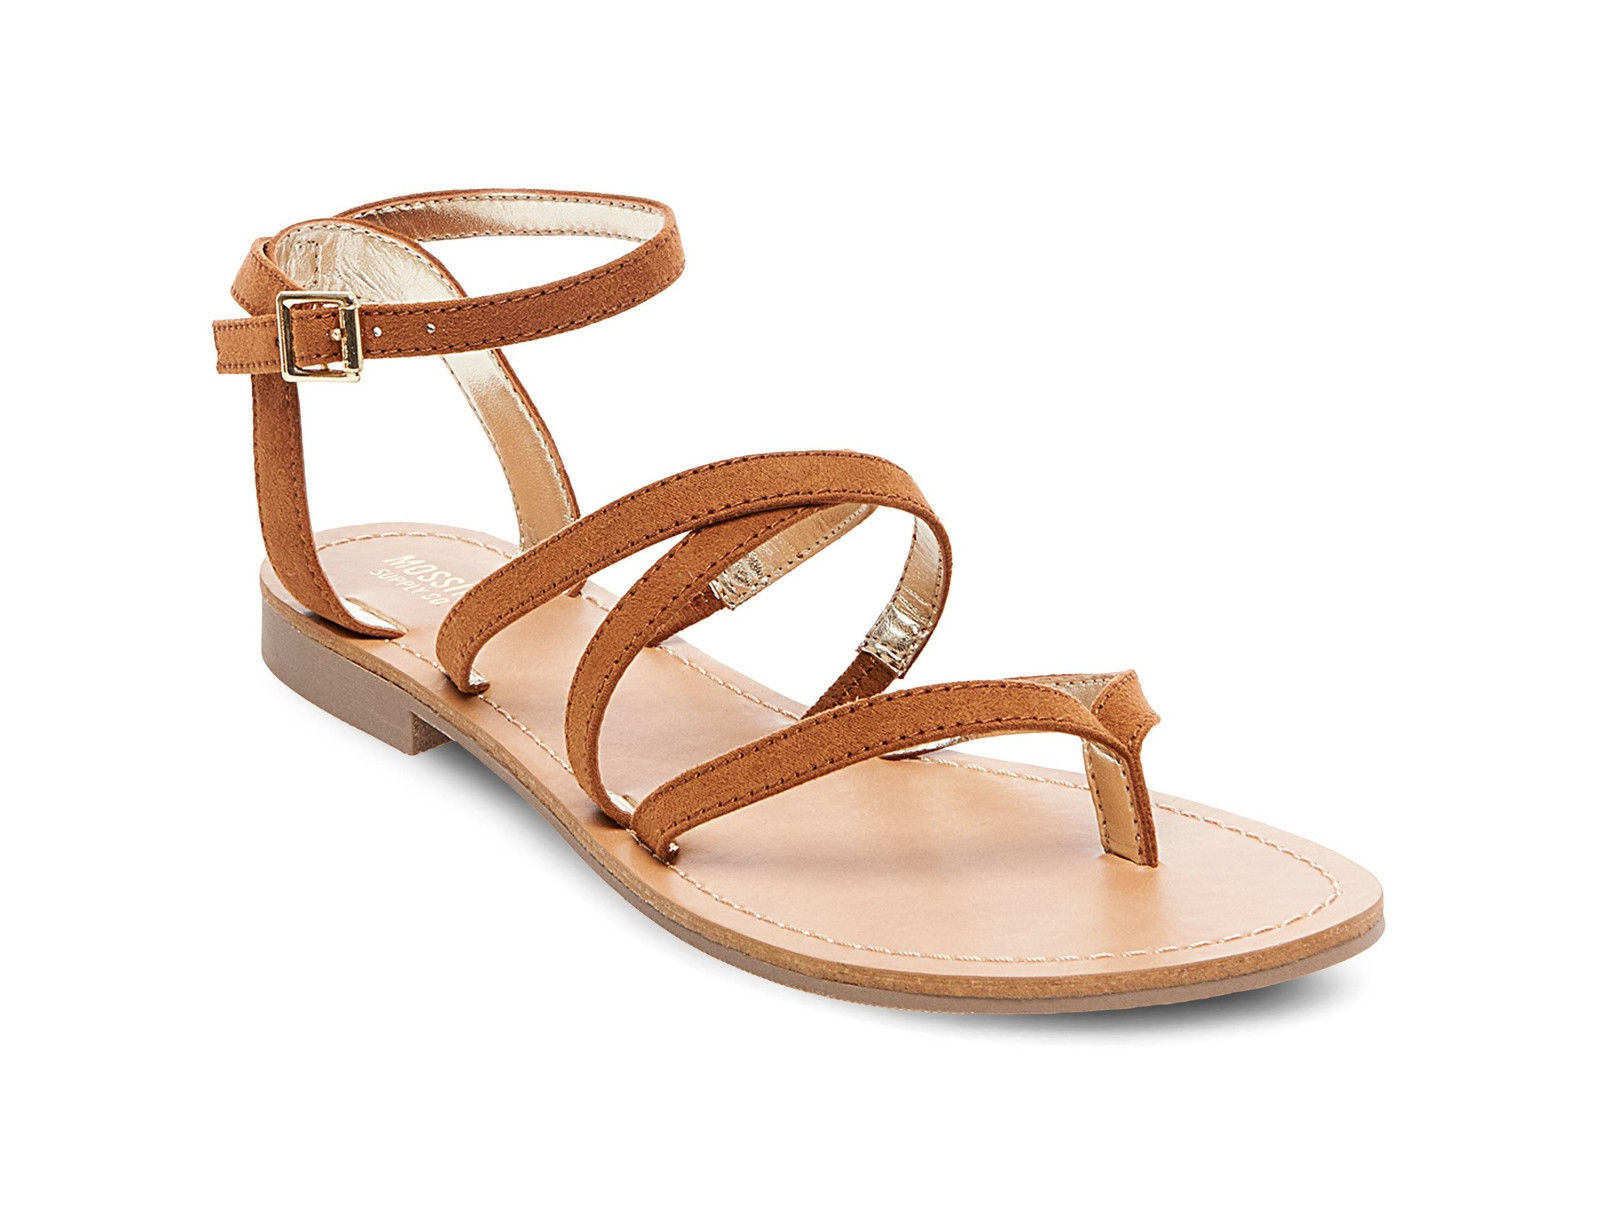 6e93b3edde81 Women s Mai Thong Sandals Mossimo Supply and 15 similar items. 57